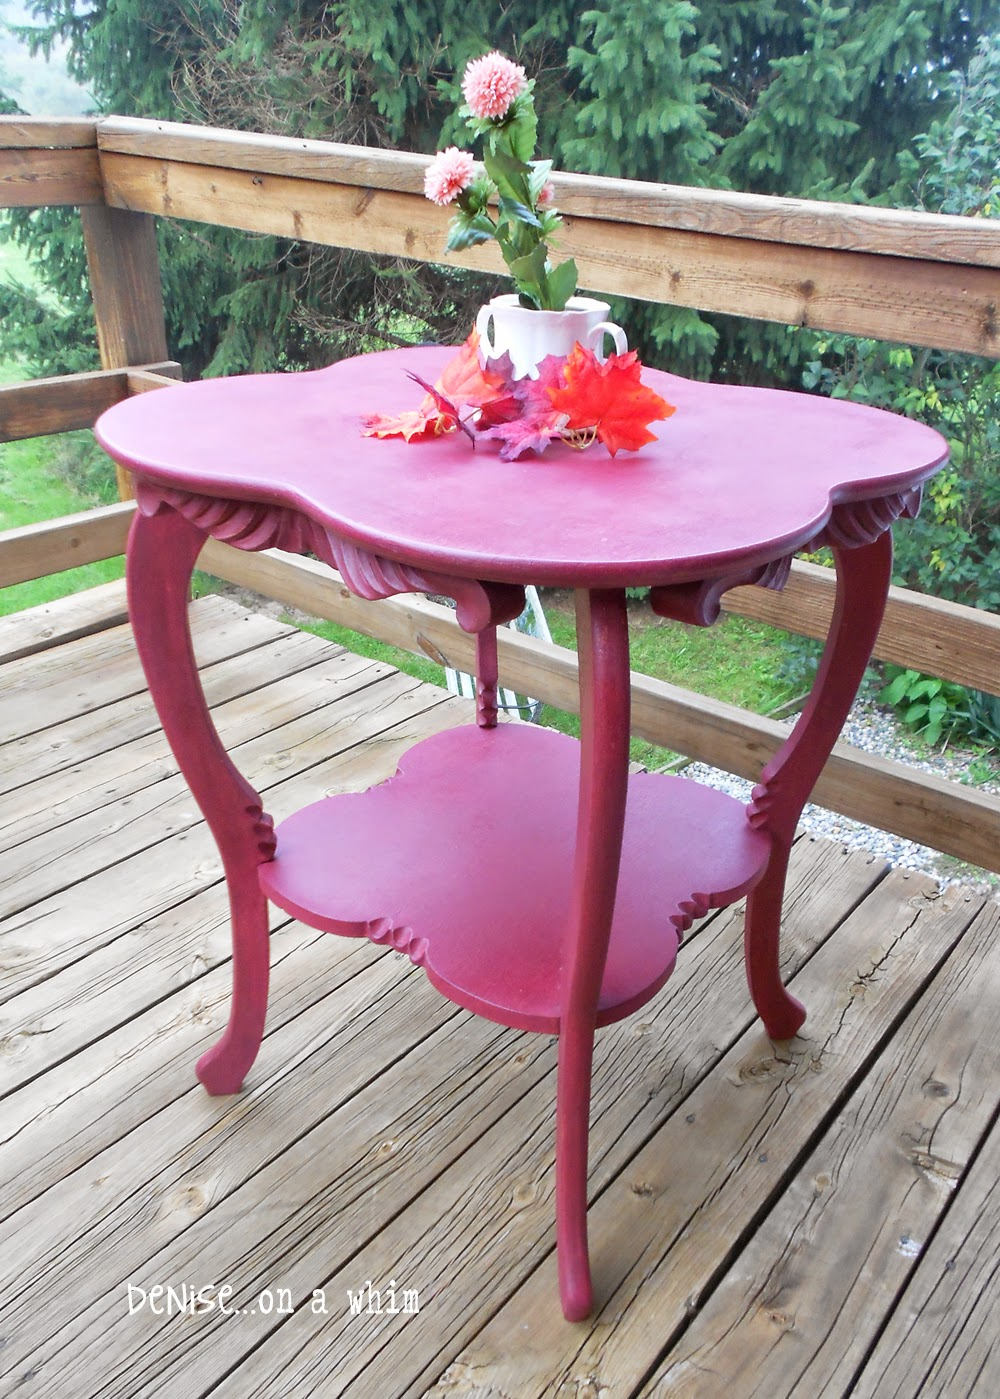 Curvy Legs on an Antique Table Makeover from Denise on a Whim